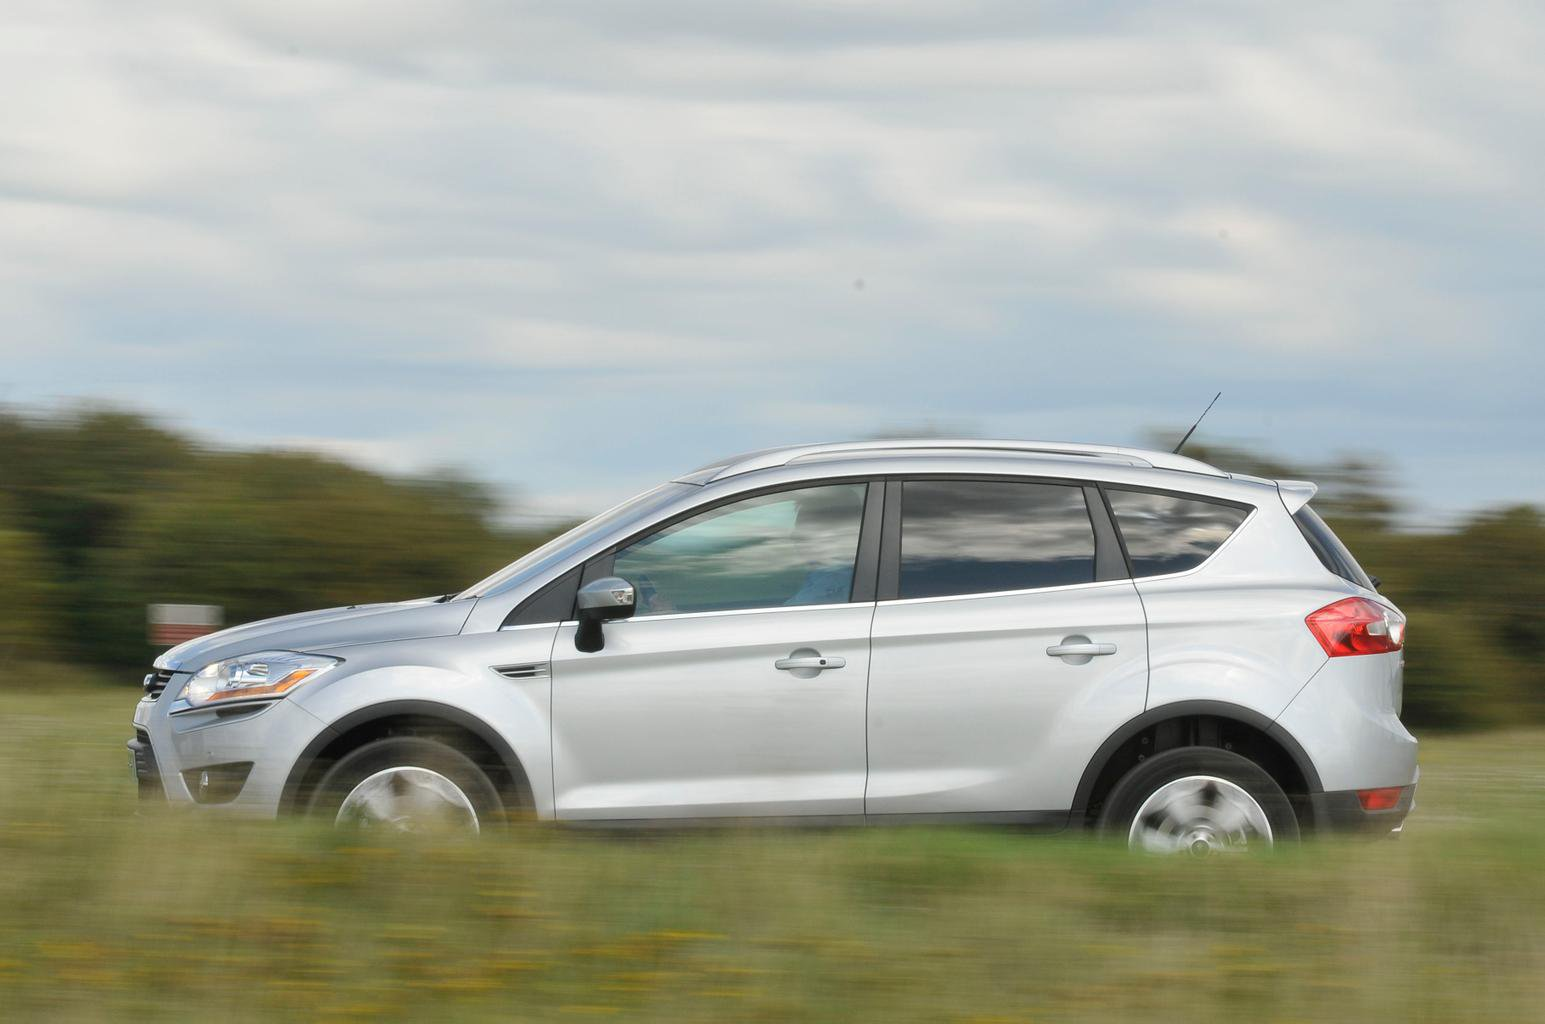 Used Ford Kuga vs Volkswagen Tiguan